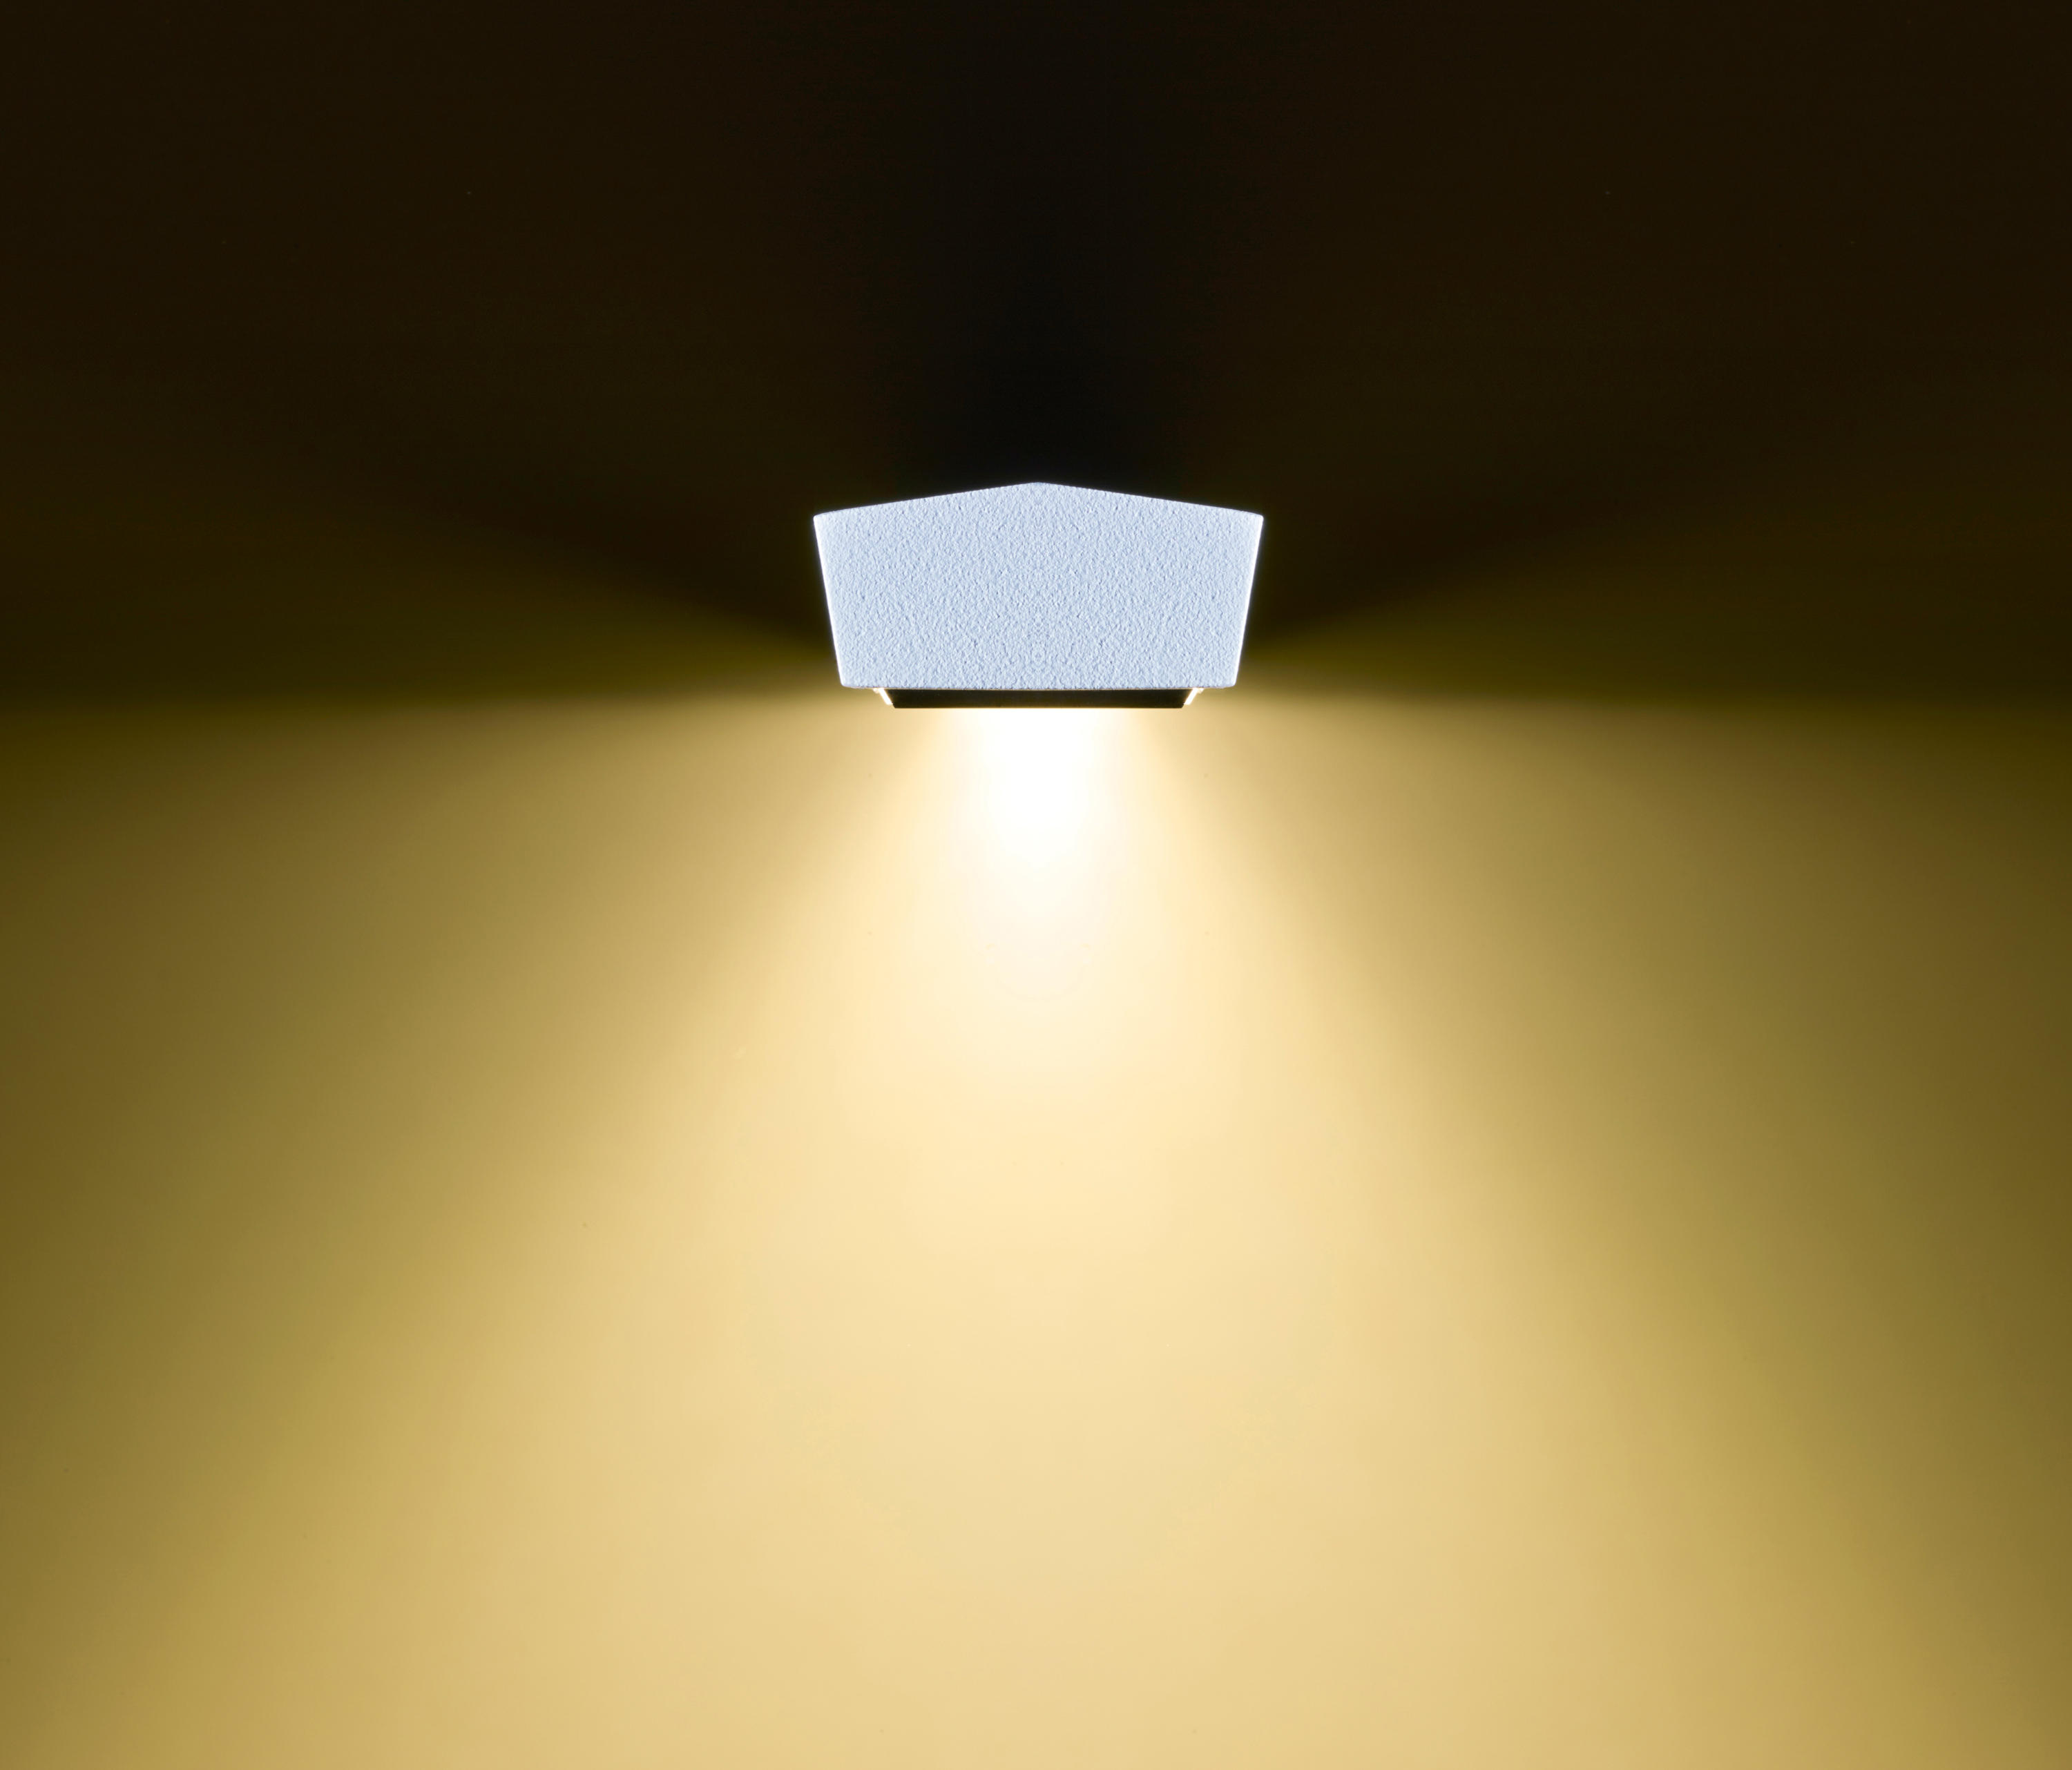 Luminaire Pendant Lisgo Sky Pendant Luminaire General Lighting From